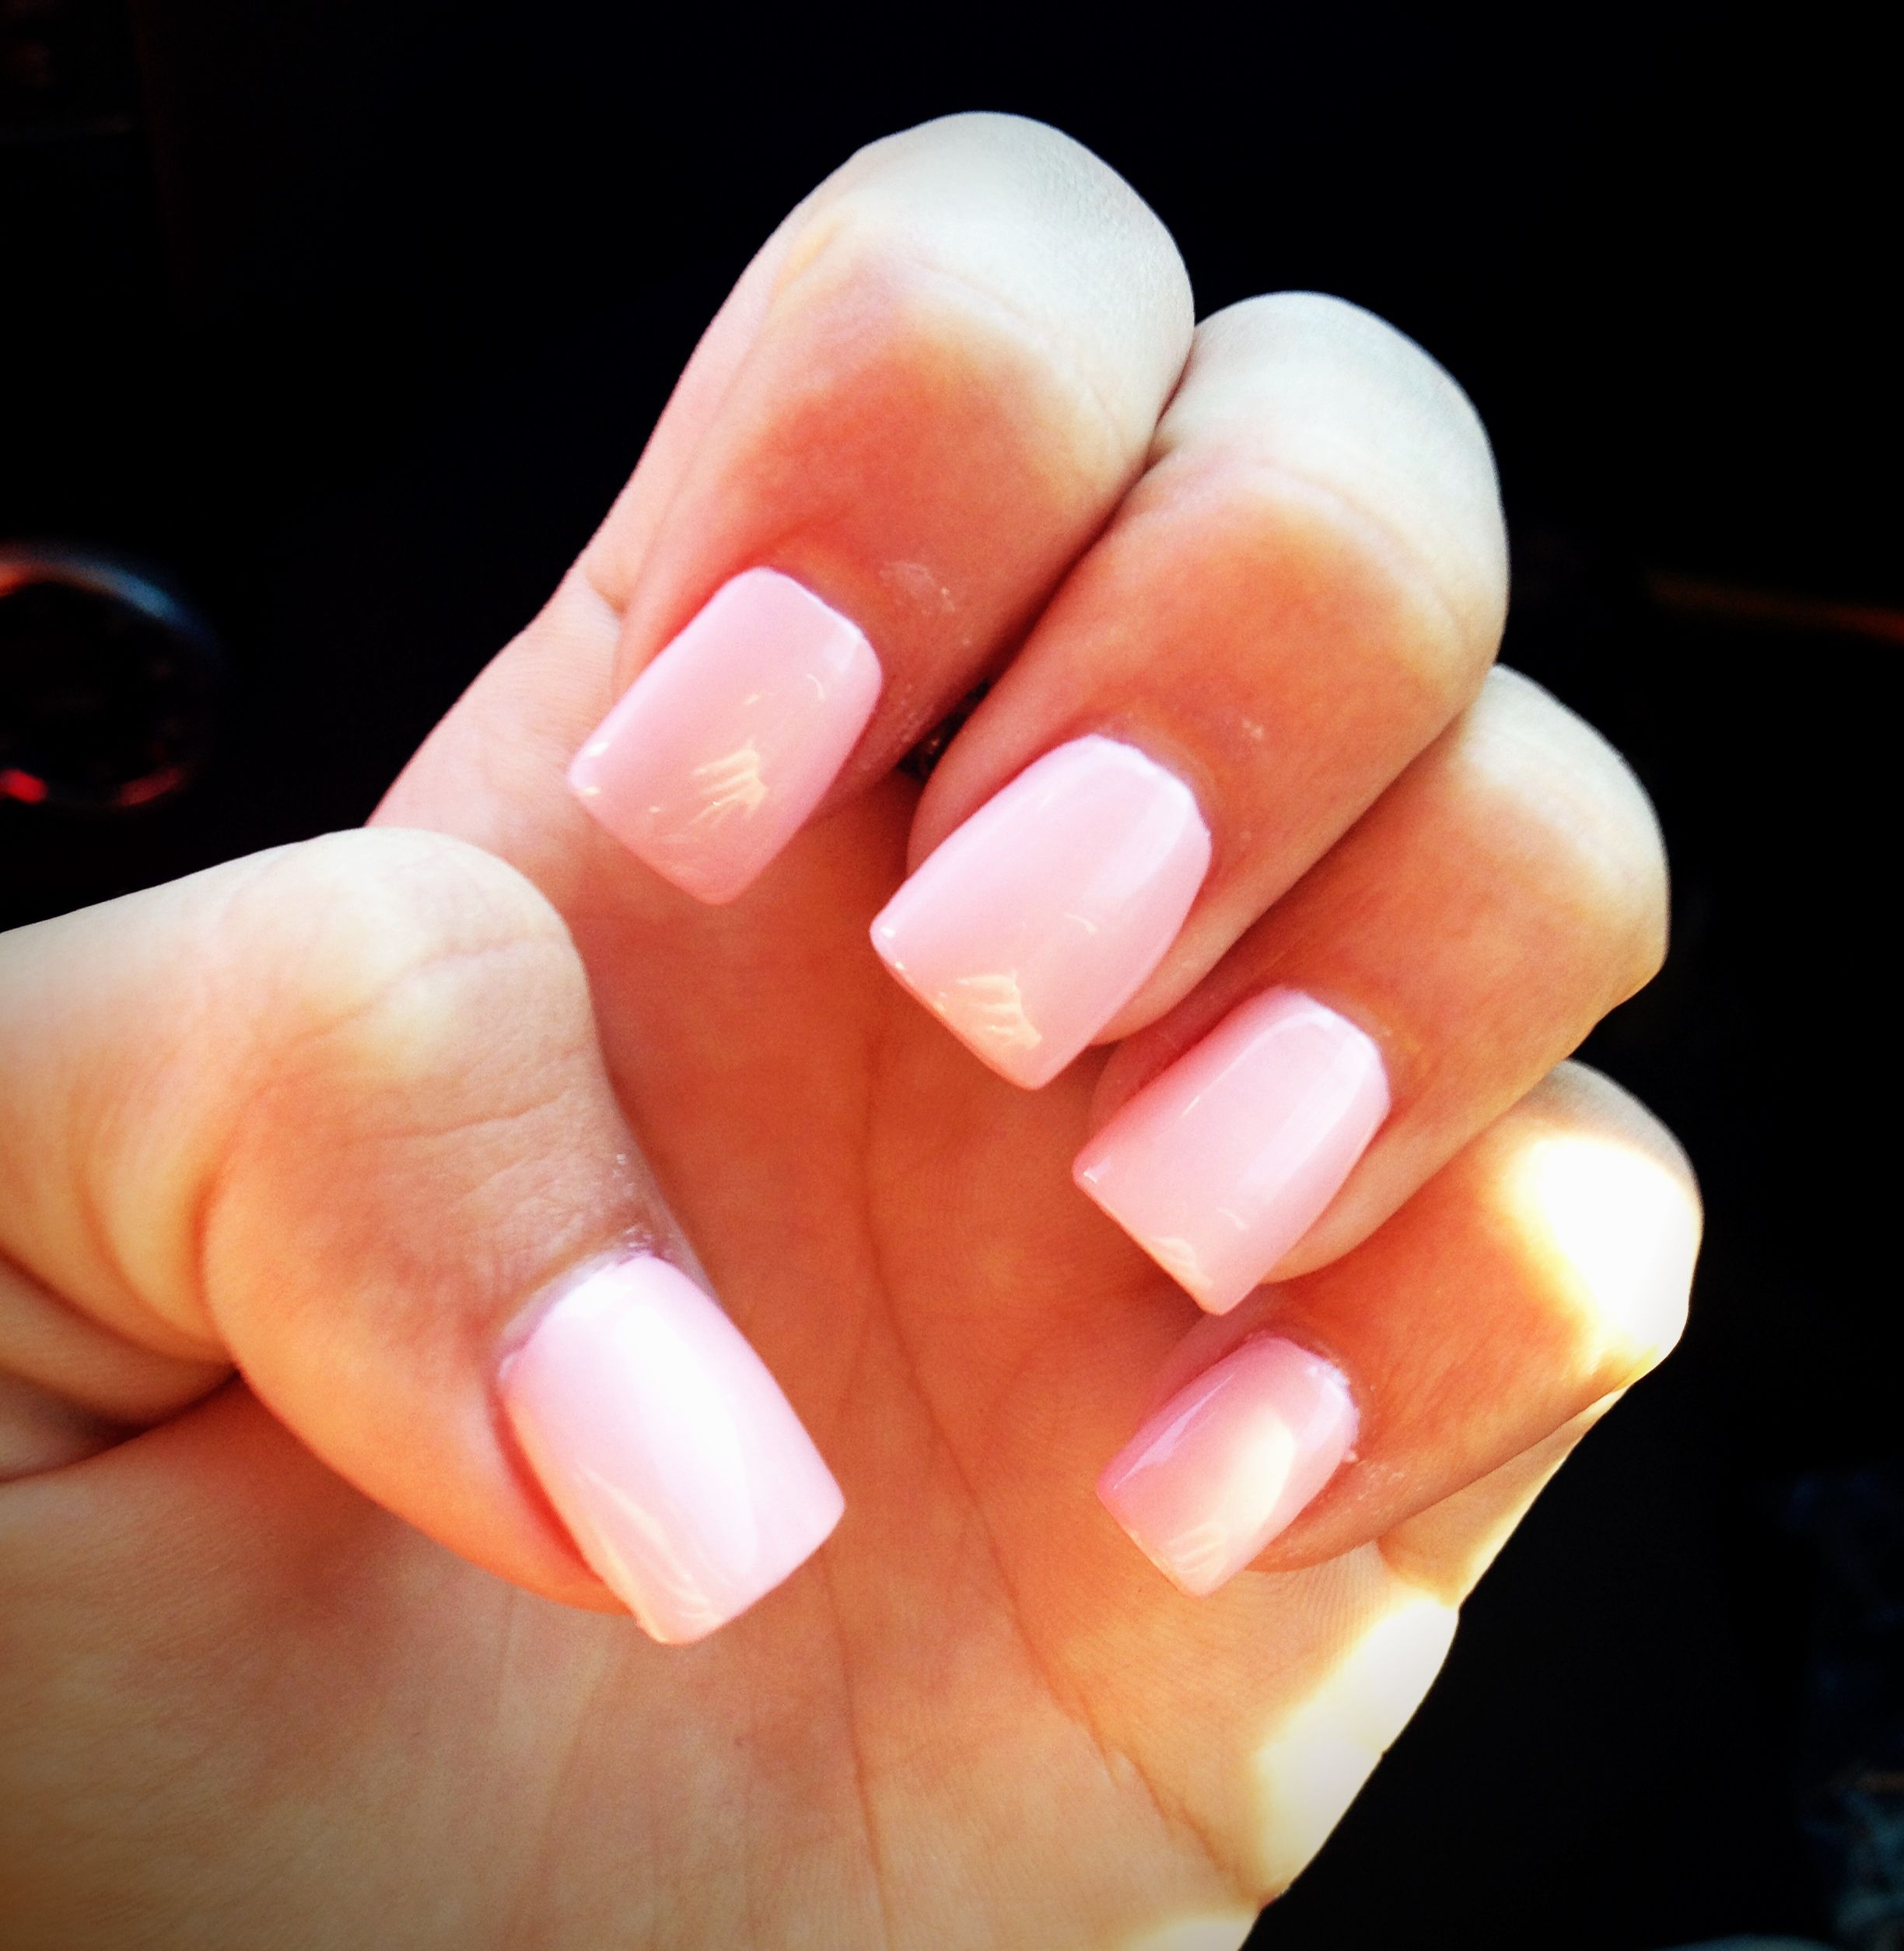 Squoval Silvers: Light Pink Acrylic Nails For Next Mani A Little Shorter